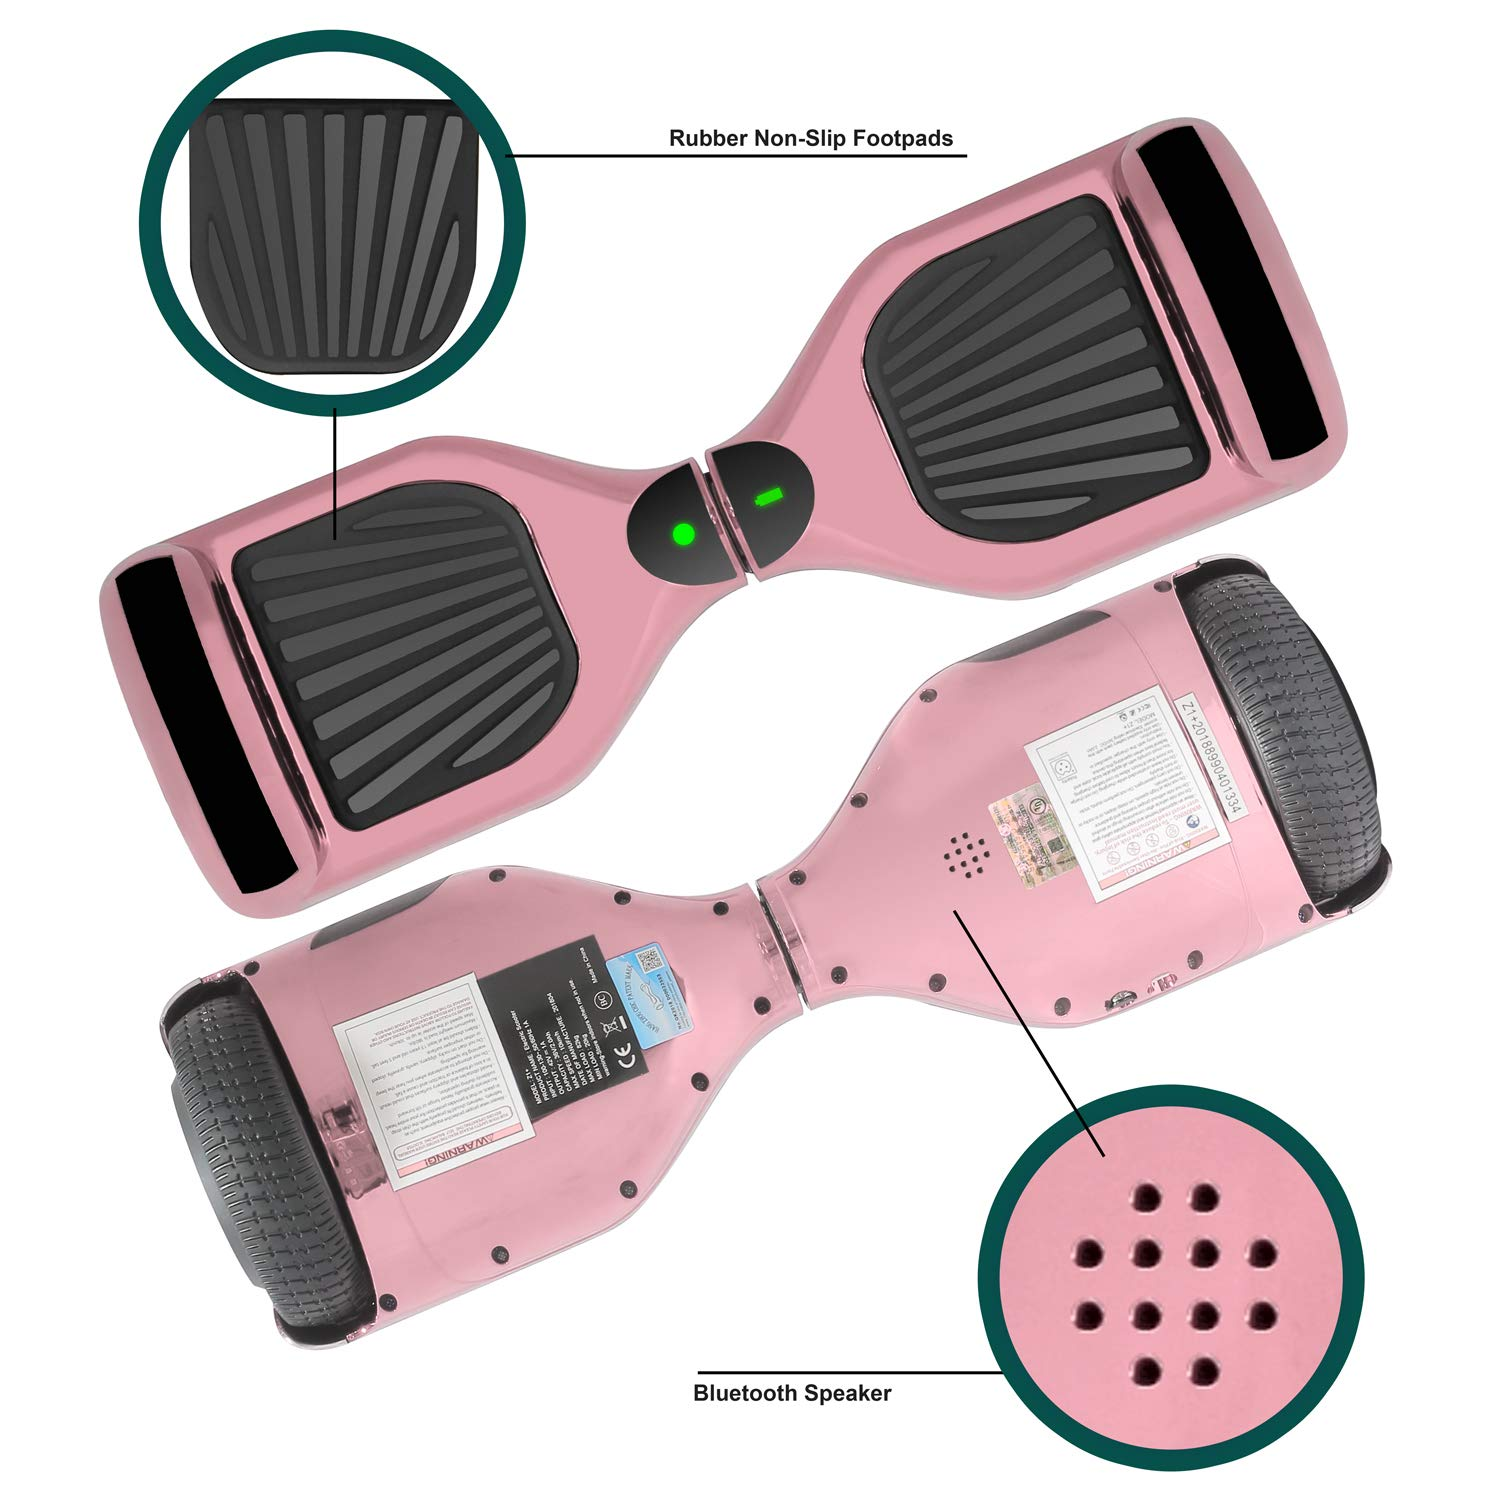 NHT 6.5'' Hoverboard Electric Self Balancing Scooter Sidelights - UL2272 Certified Black, Blue, Pink, Red, White or Chrome Style (Chrome Rose Gold) by NHT (Image #3)